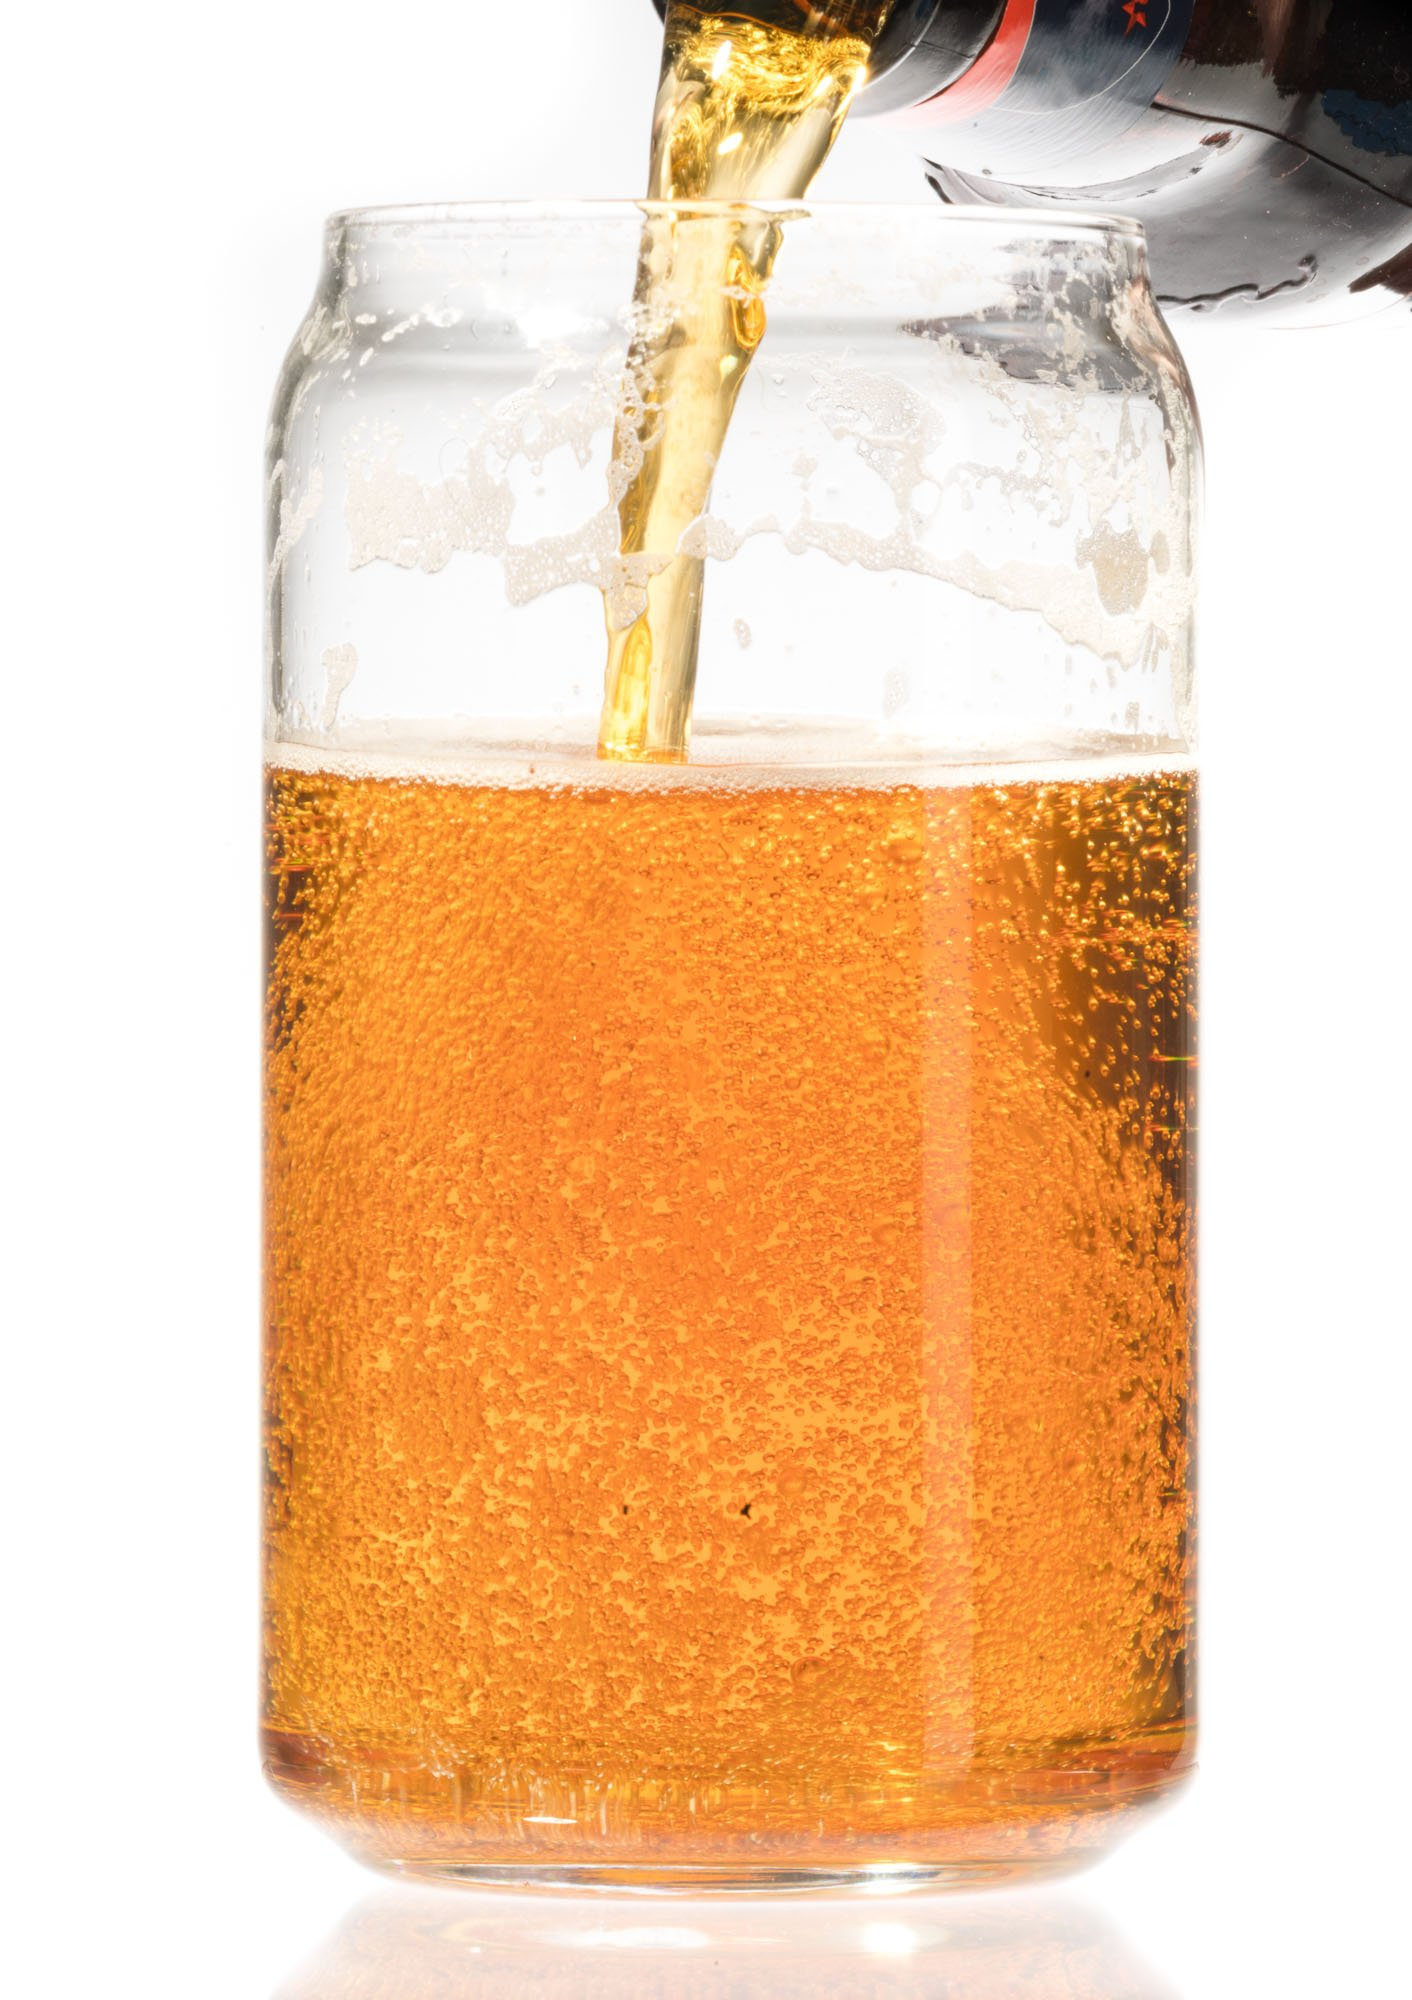 Ecodesign Drinkware Libbey Beer Glass Can Shaped 16 oz - Pint Beer Glasses 4 PACK w/coasters by Ecodesign Drinkware (Image #4)